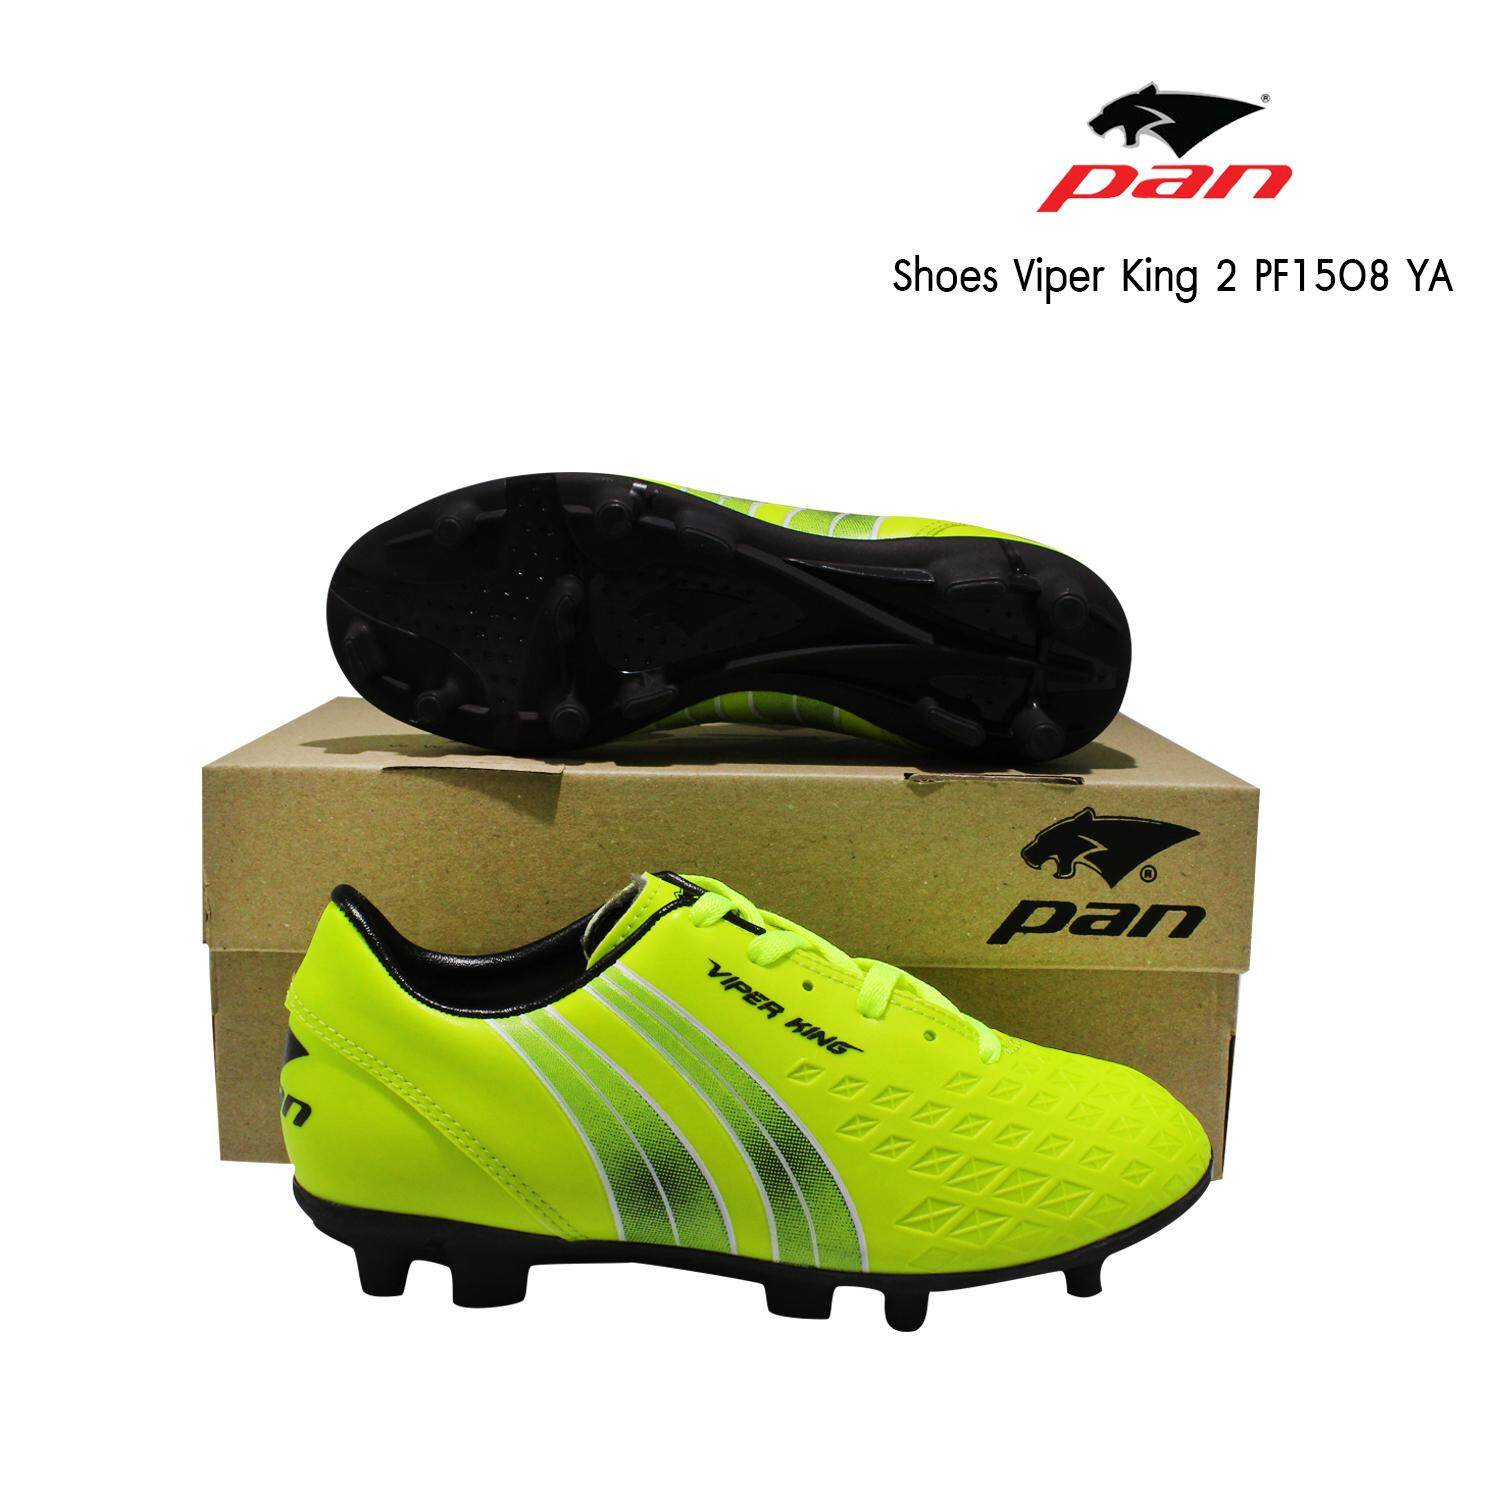 Pan รองเท้า ฟุตบอล แพน Junior Football Shoes Viper King 2 Pf15o8 (479) By Landco Sport And Musical.